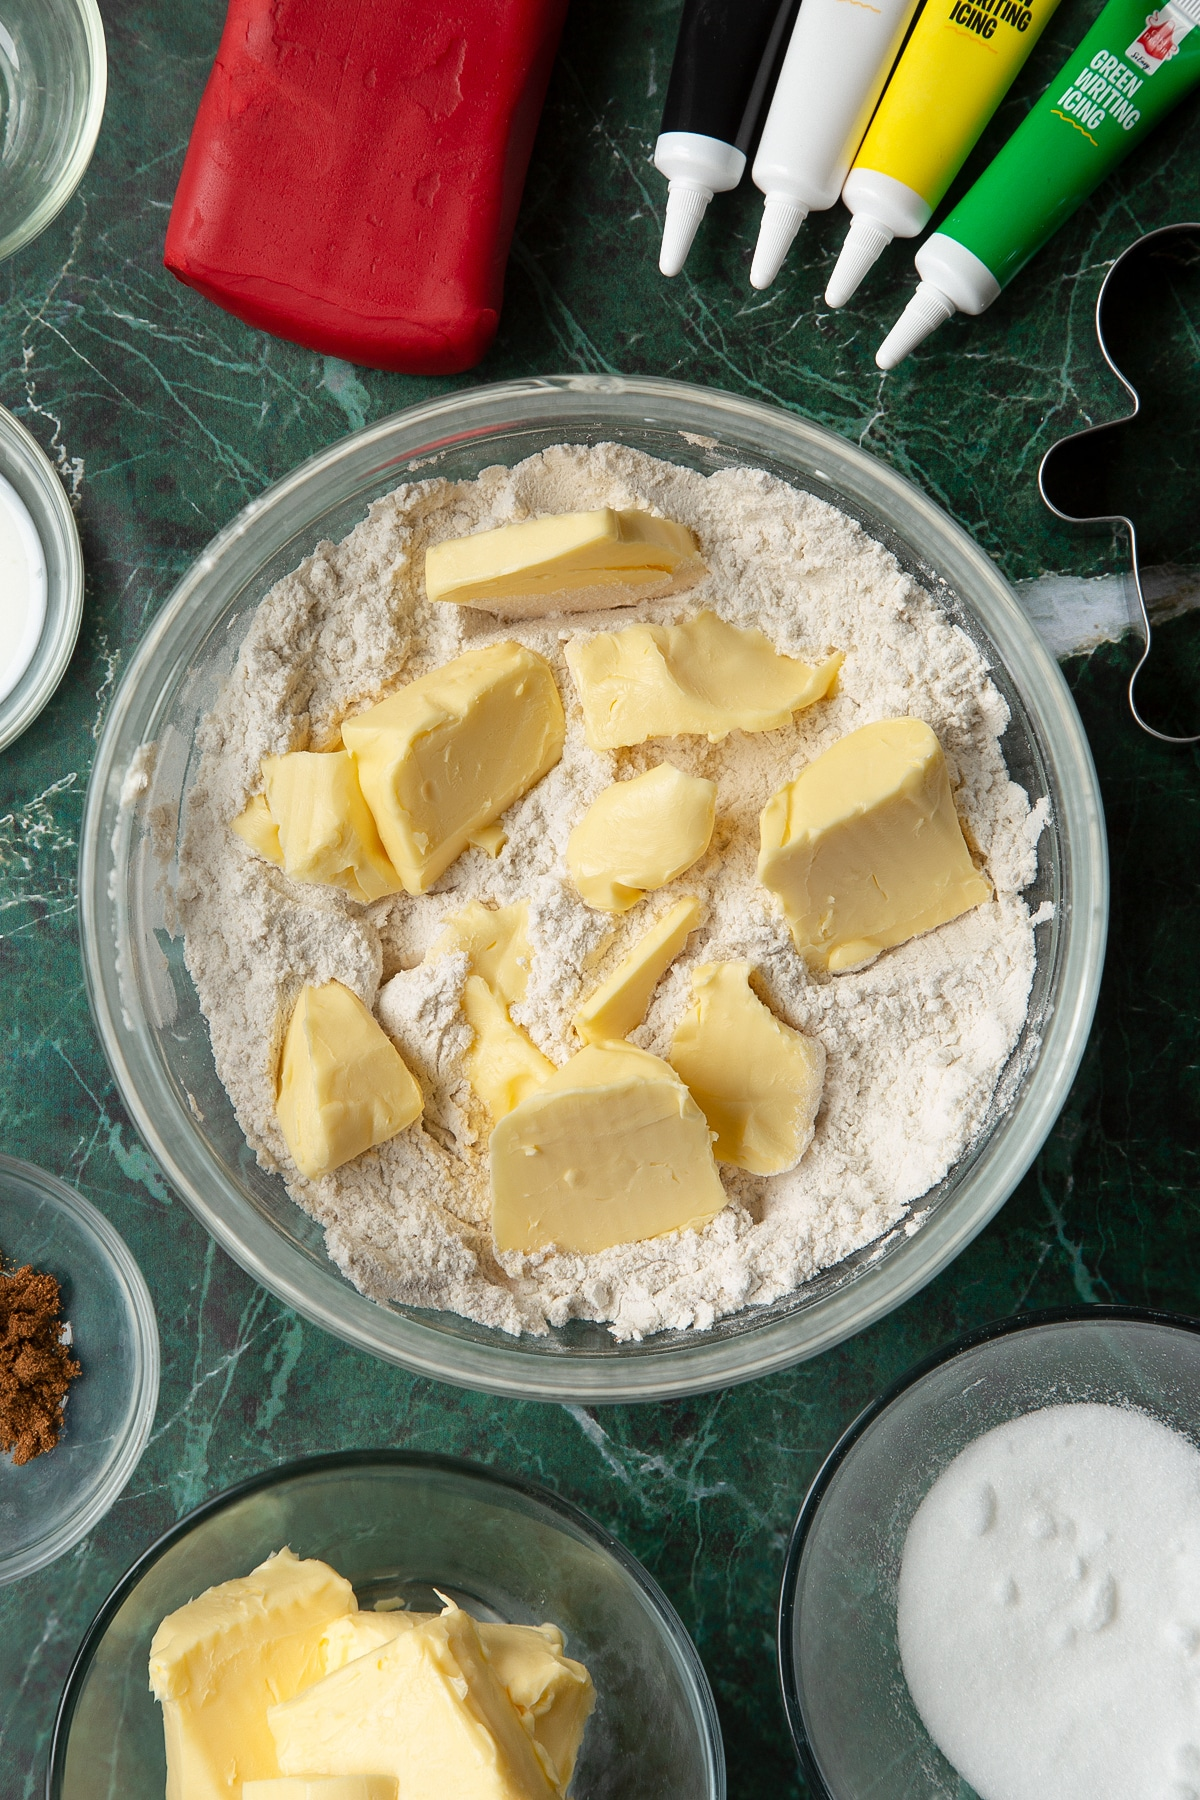 Flour, sugar and mixed spice combined in a glass mixing bowl with butter on top. The bowl is surrounded by ingredients to make Father Christmas cookies.